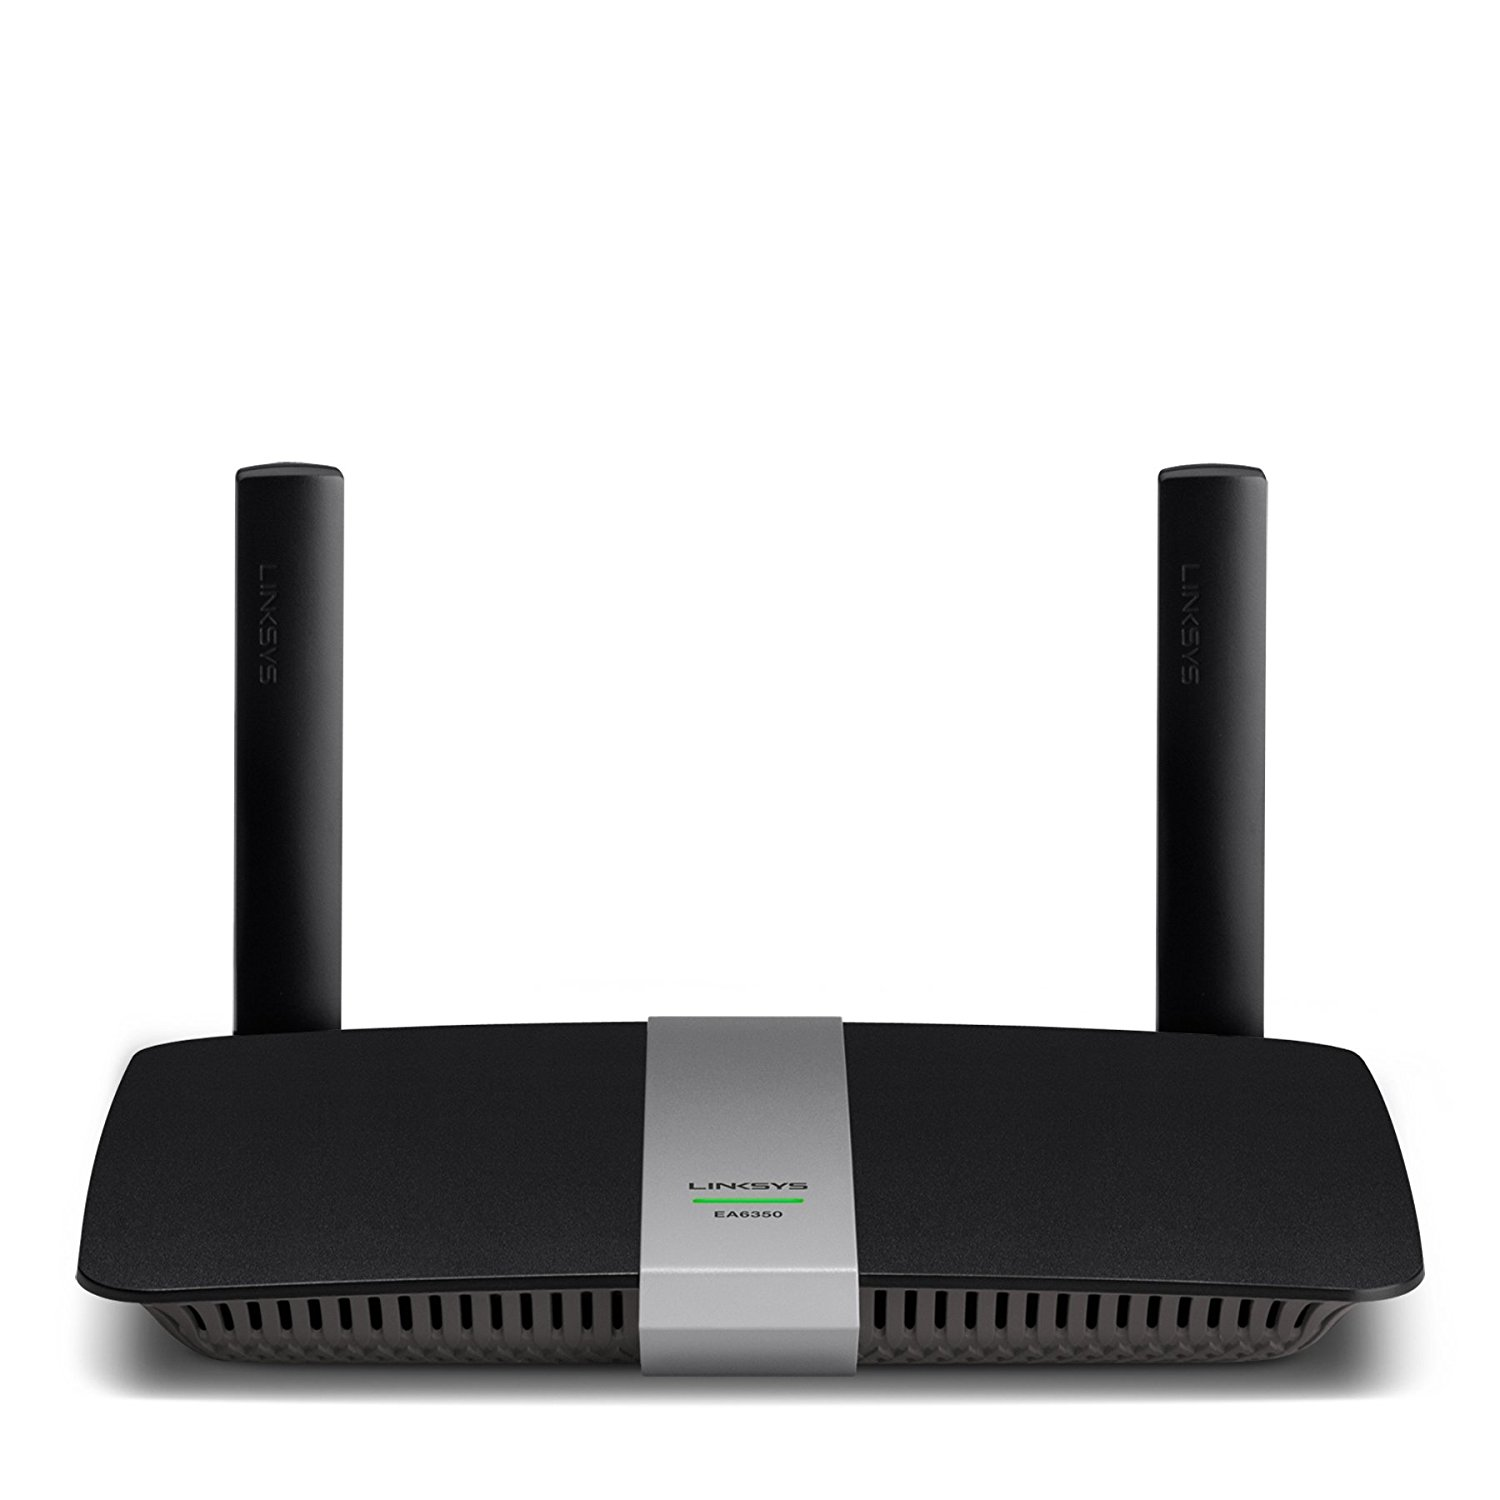 10 Best Wi-fi Wireless Router Black Friday 2021 & Cyber Monday Deals